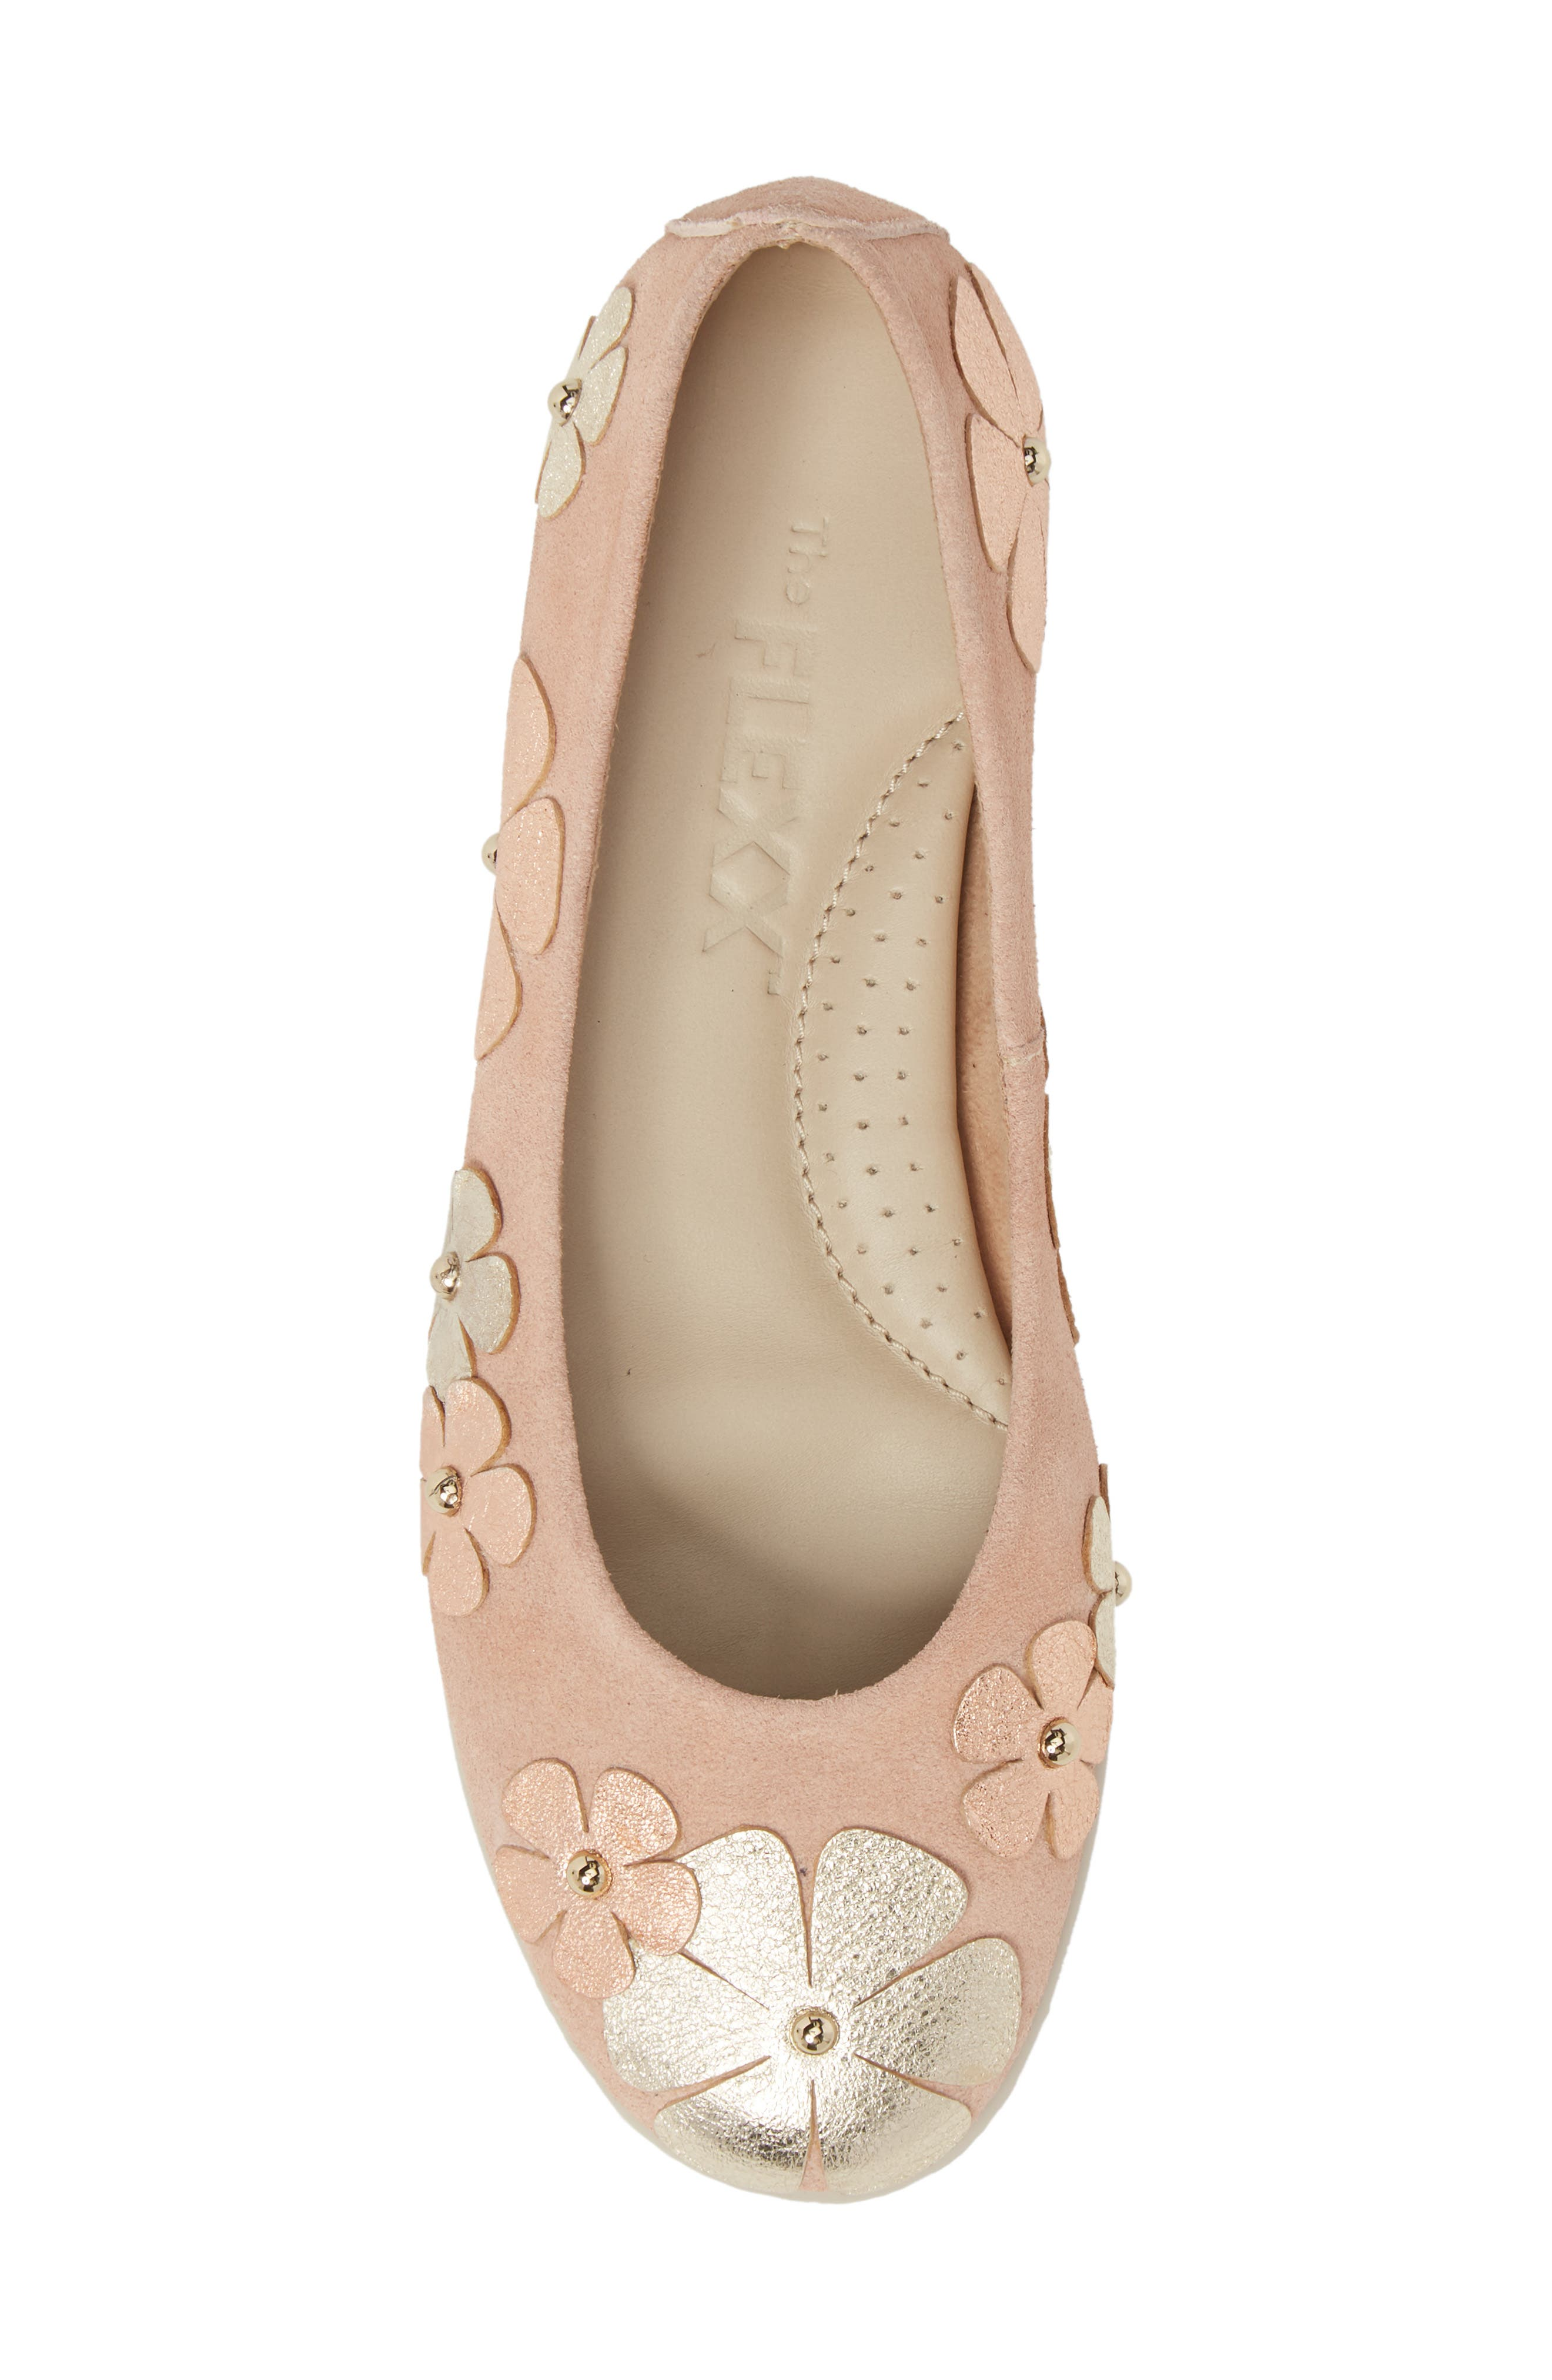 Miss Hippie Ballerina Flat,                             Alternate thumbnail 5, color,                             ROSE GOLD LEATHER